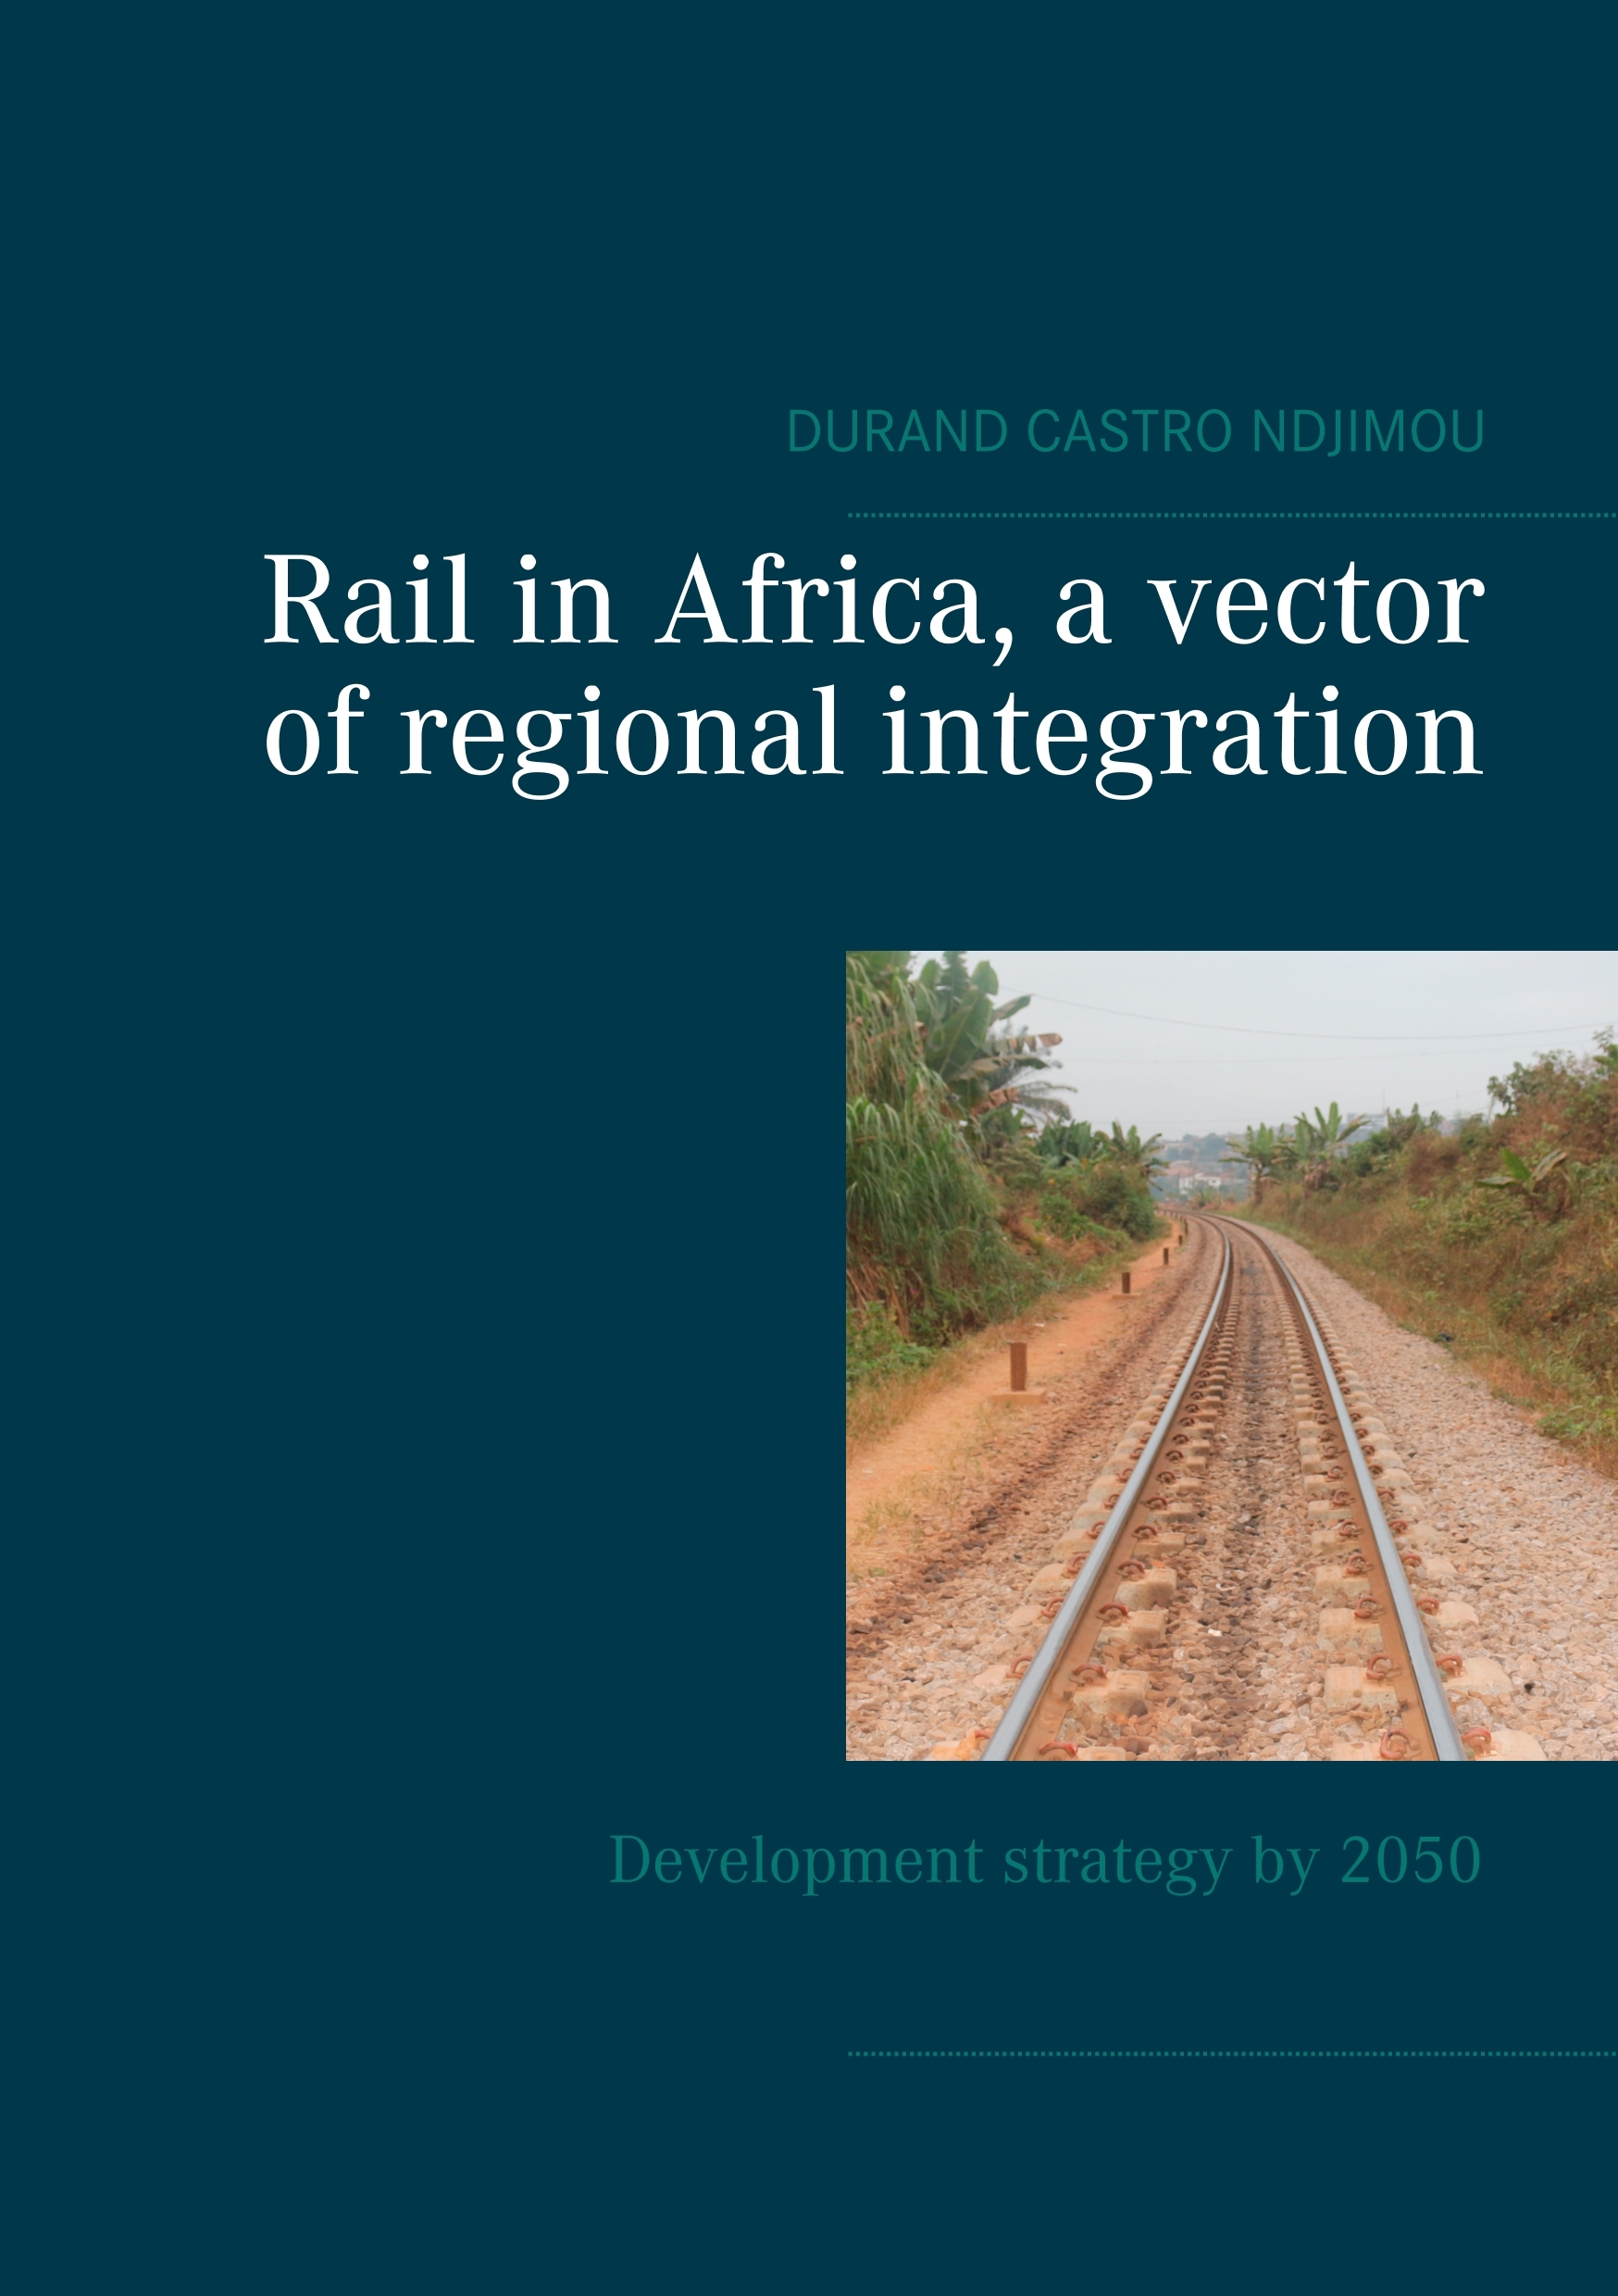 RAIL IN AFRICA, A VECTOR OF INTEGRATION - DEVELOPMENT STRATEGY BY 2050